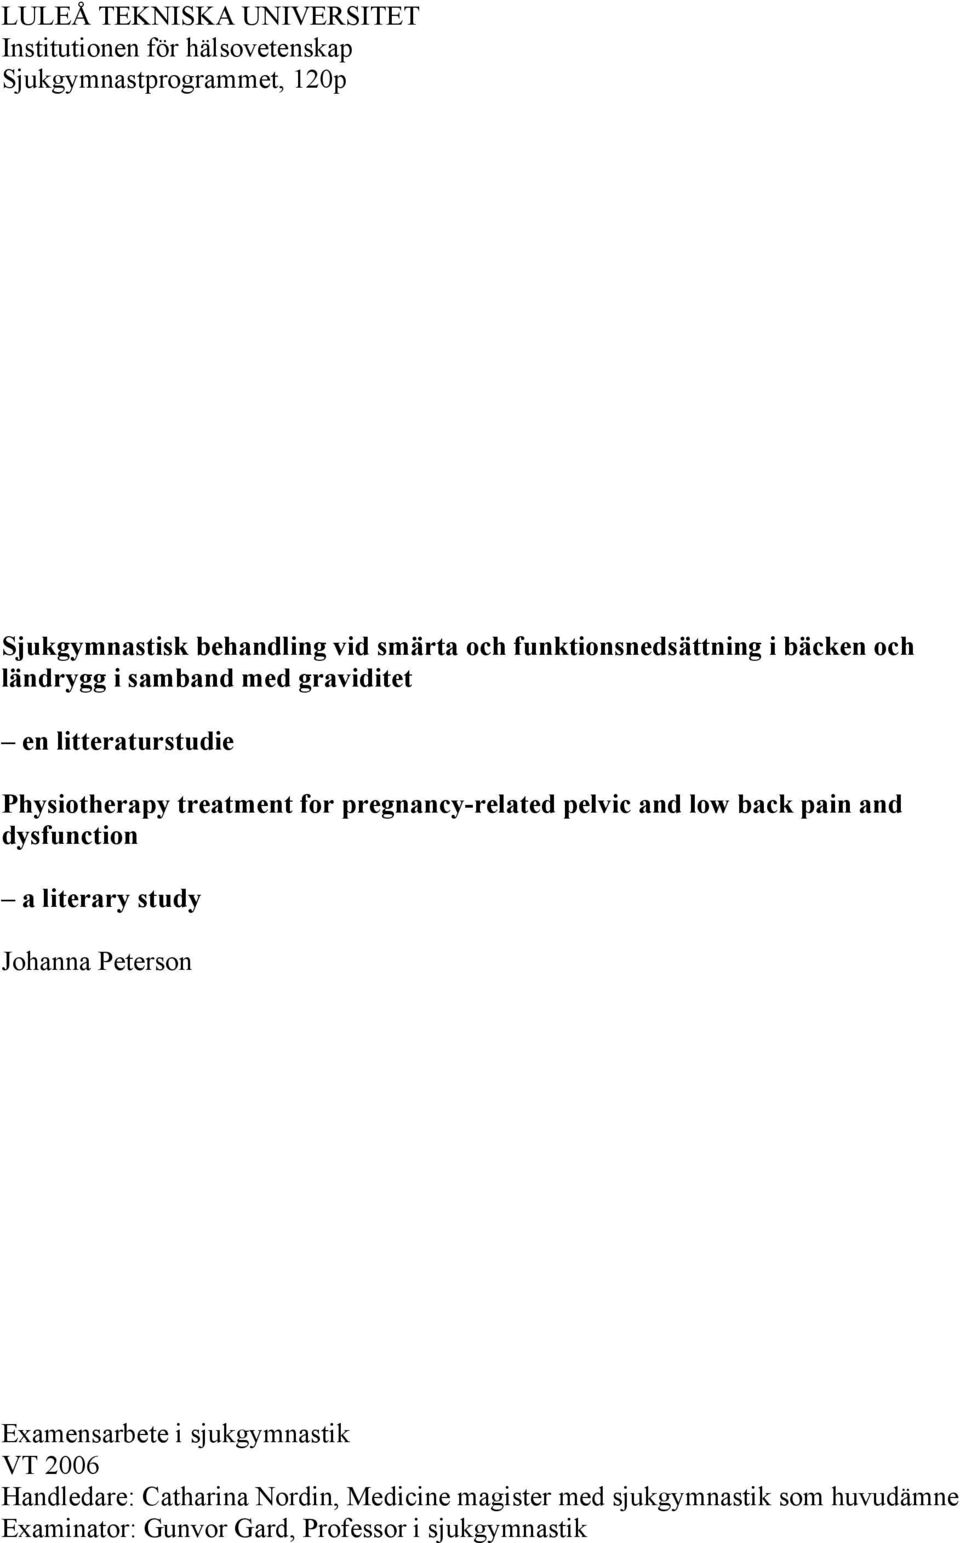 pregnancy-related pelvic and low back pain and dysfunction a literary study Johanna Peterson Examensarbete i sjukgymnastik VT